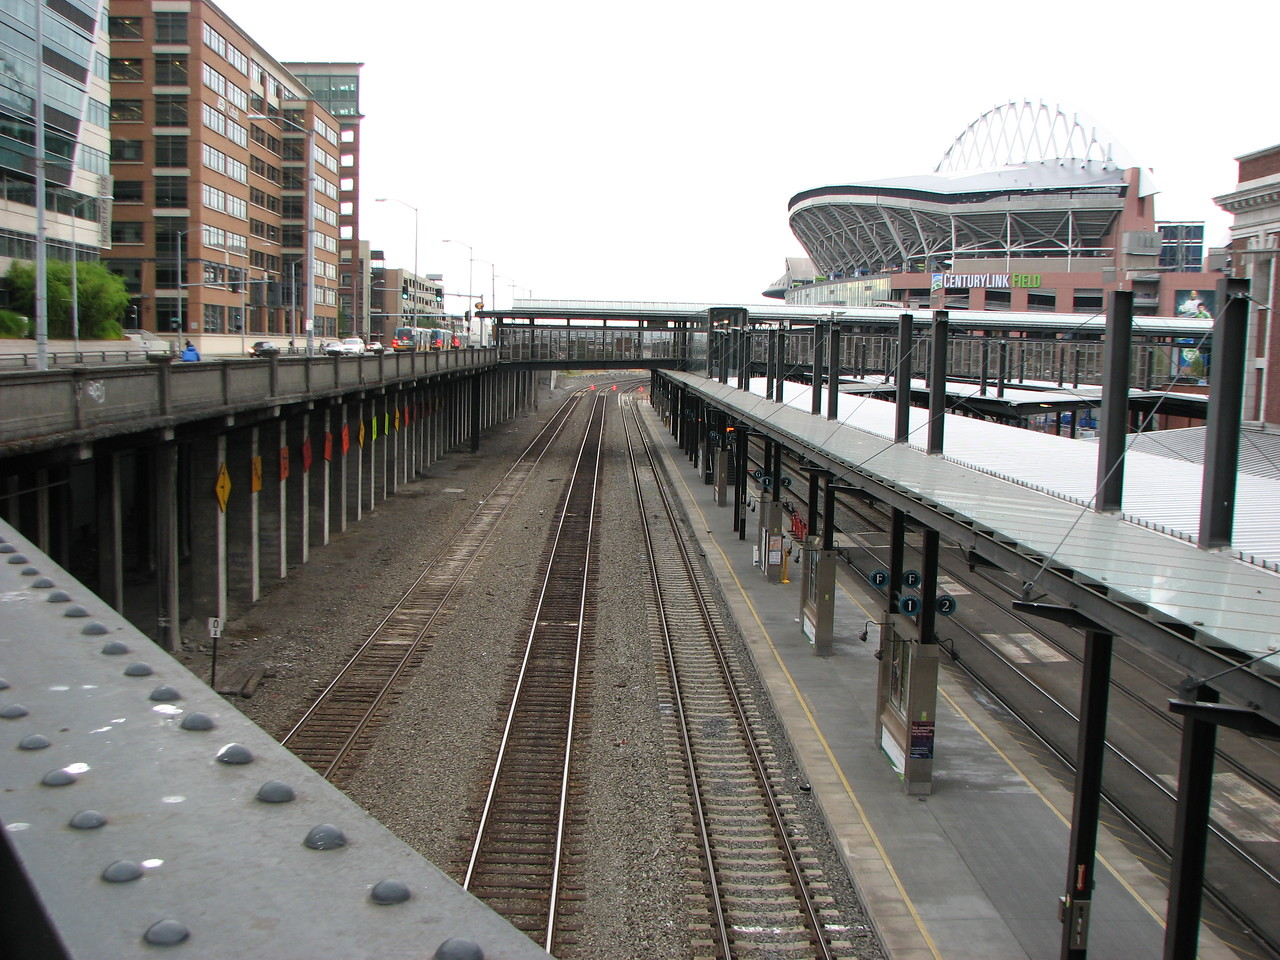 Southbound view of Station Platforms.